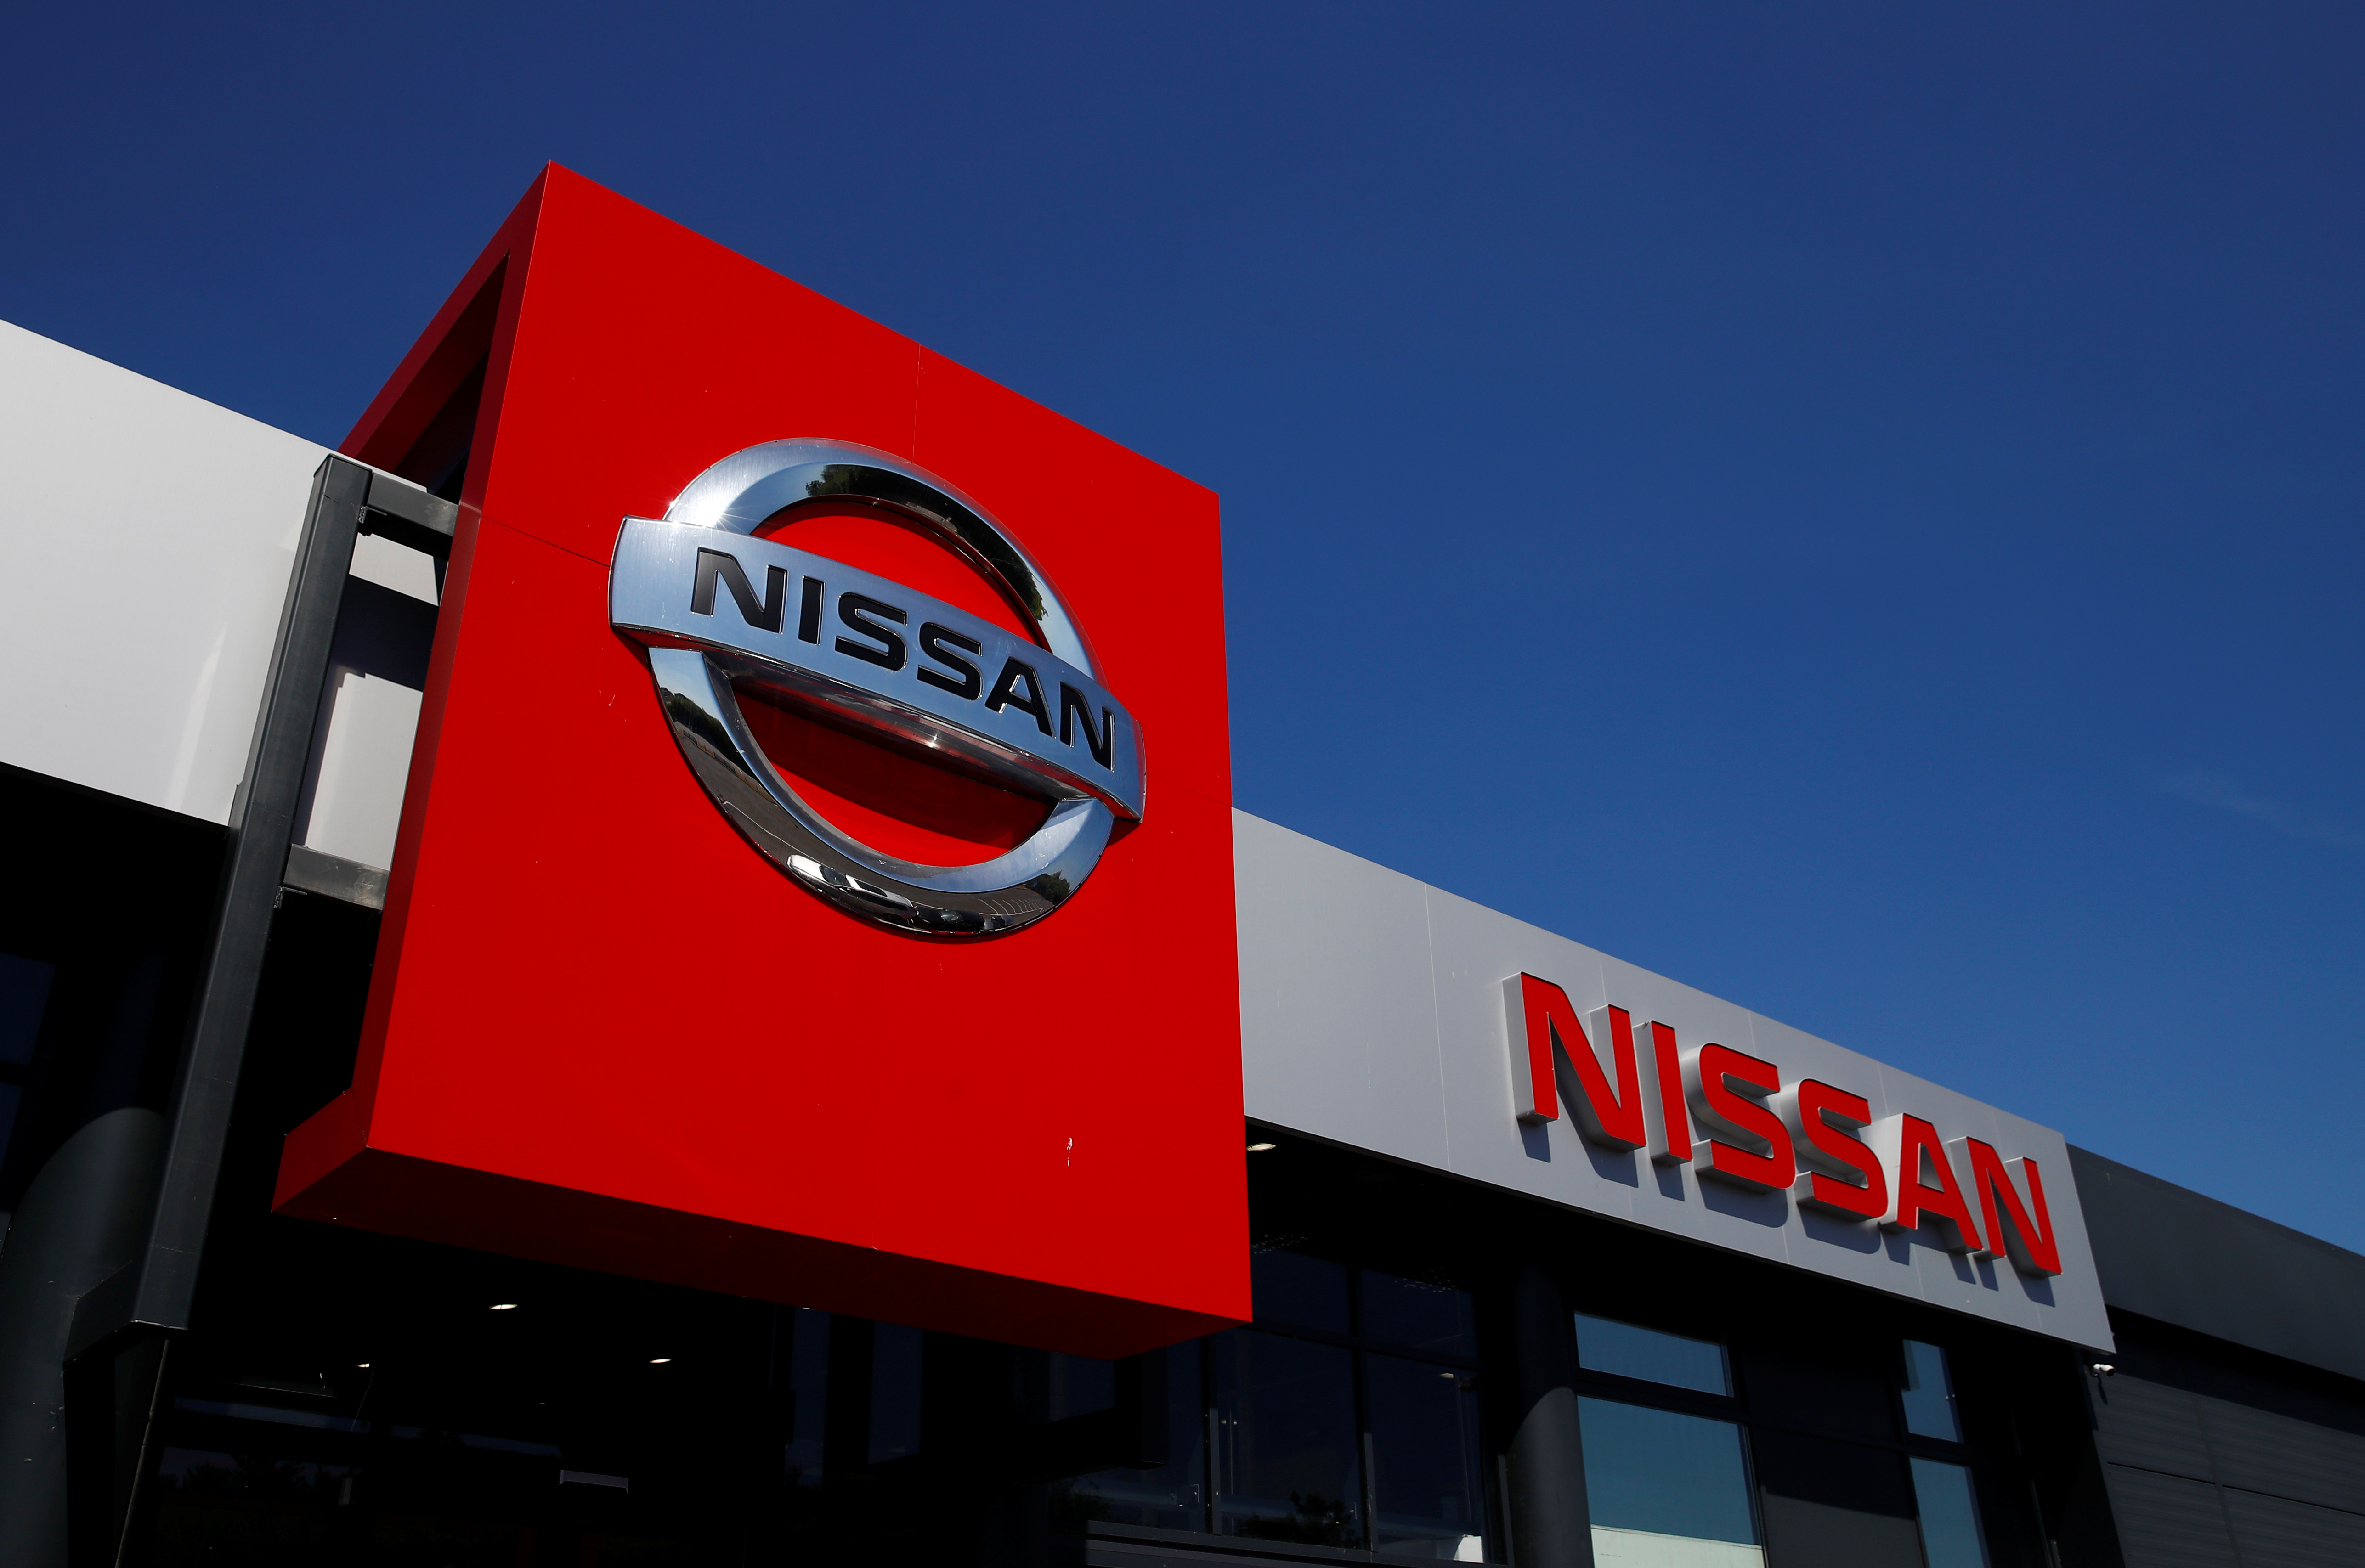 A Nissan car dealership is pictured in Northwich, following the outbreak of the coronavirus disease (COVID-19), Northwich, Britain, May 30, 2020. REUTERS/Jason Cairnduff